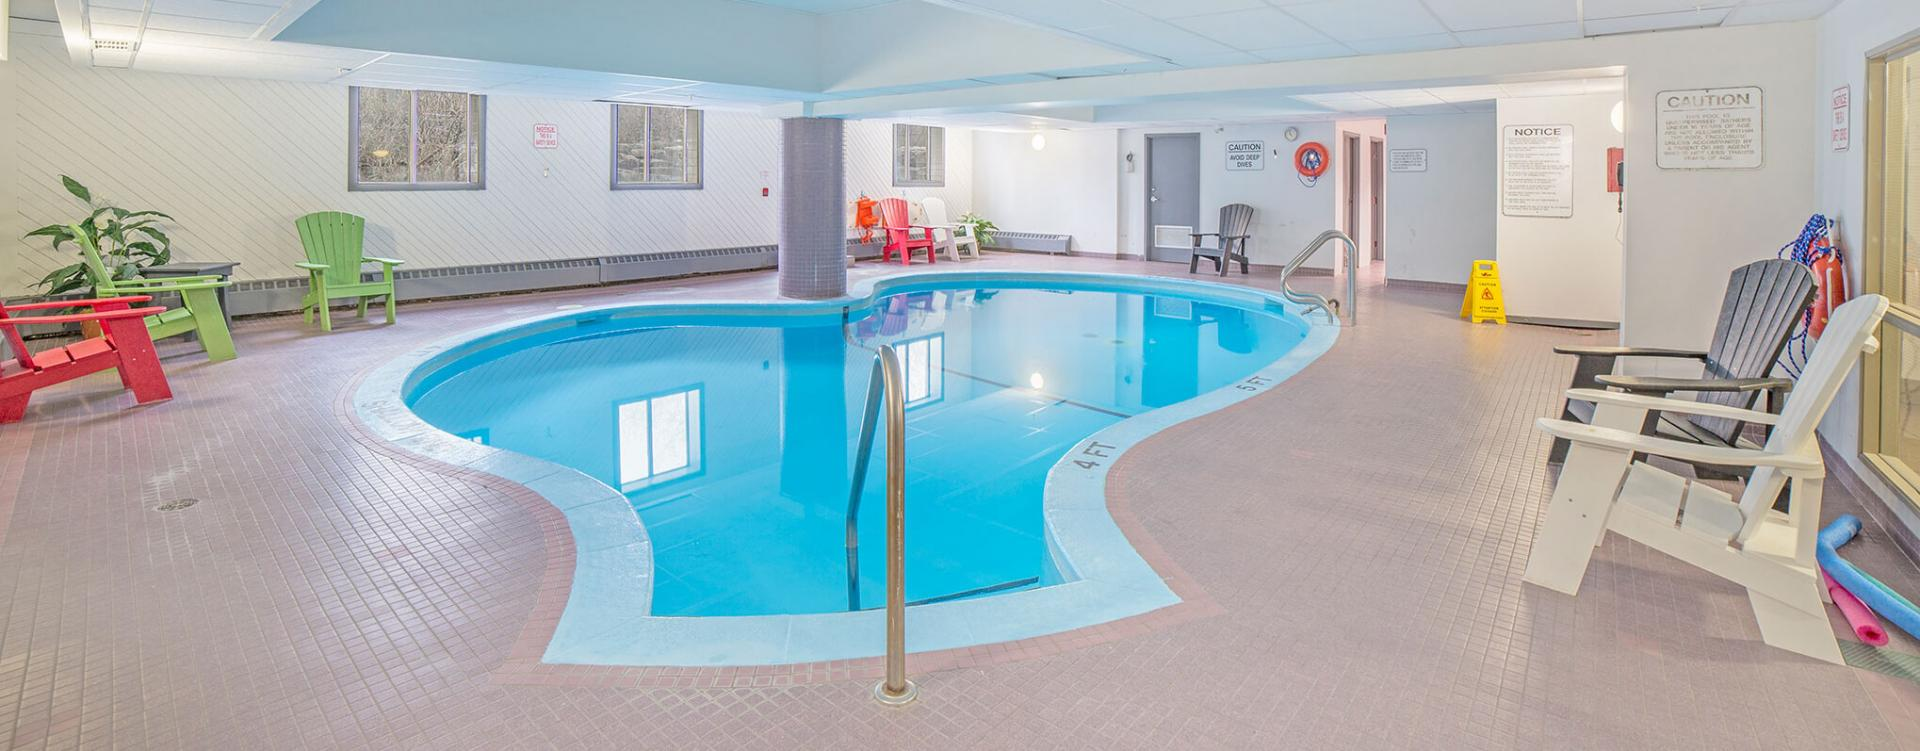 Indoor pool at Castle Hill in Ottawa